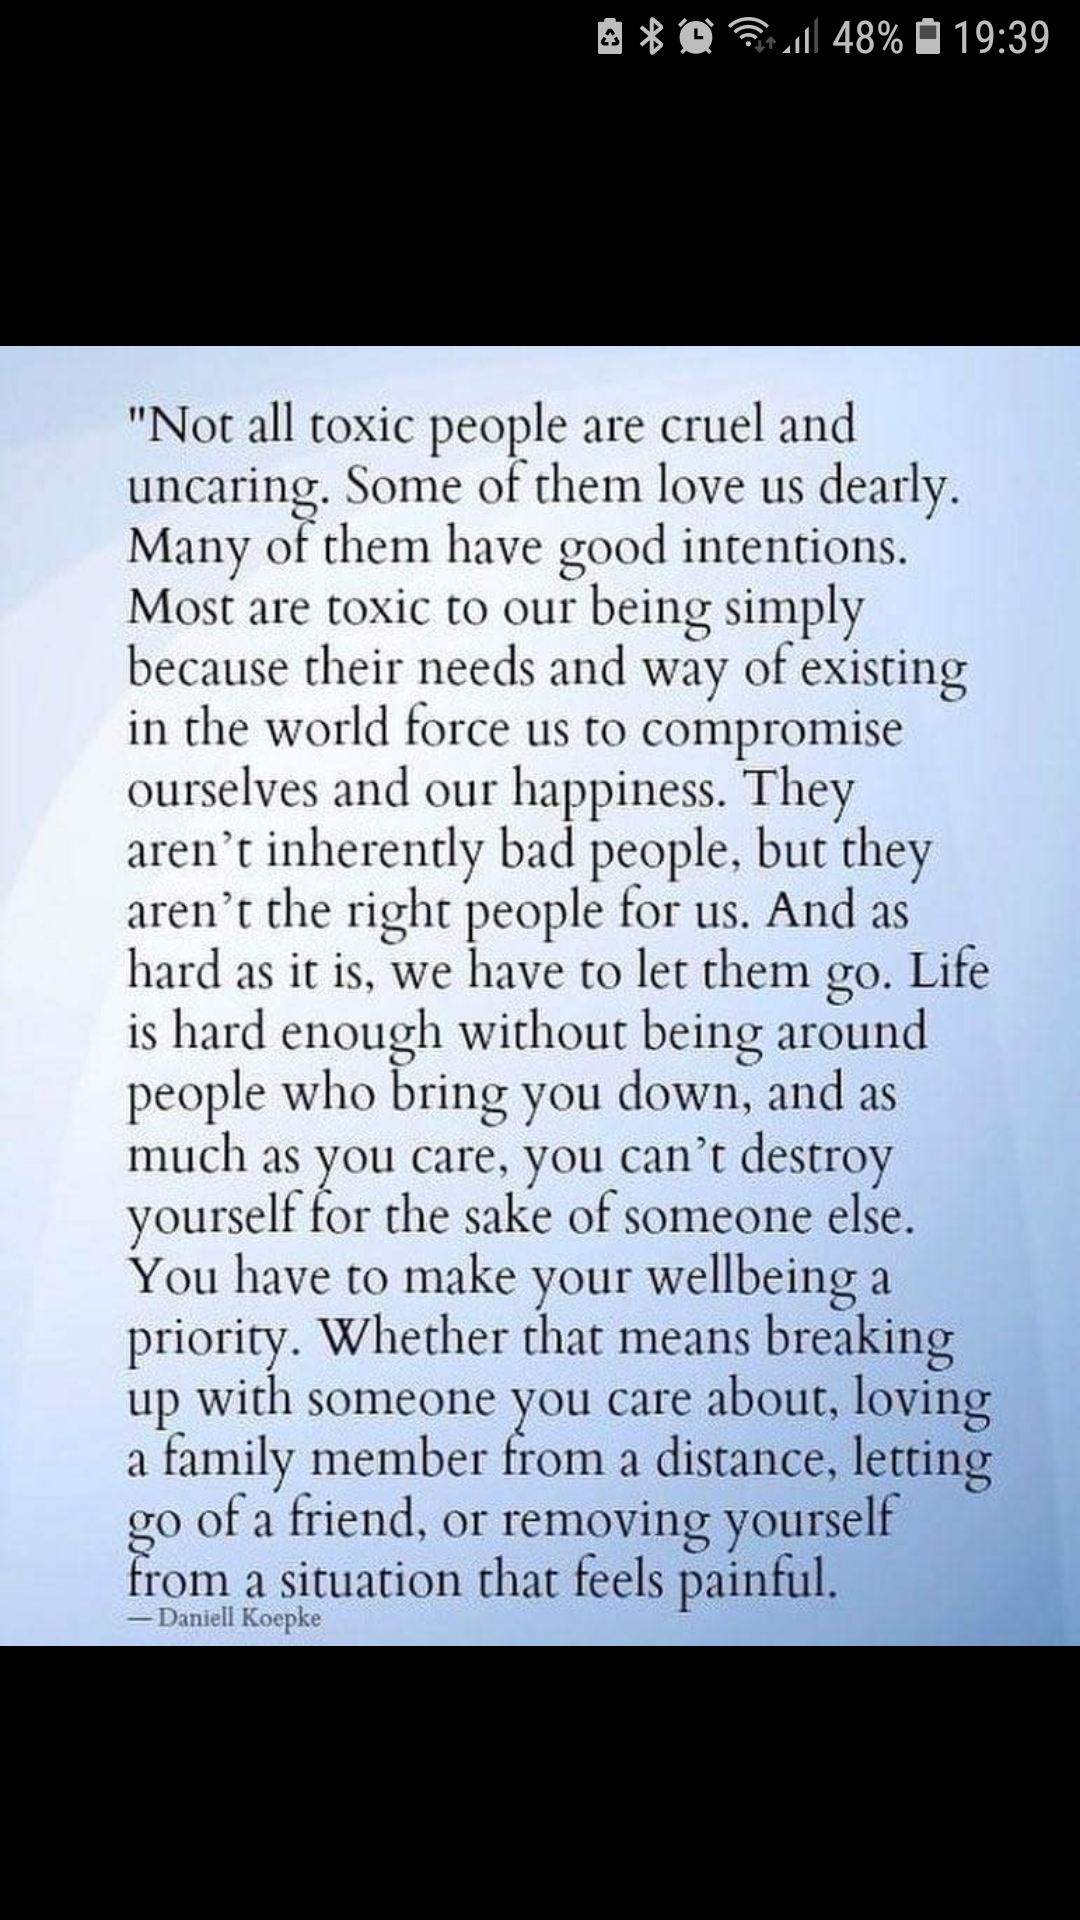 [Image] Letting go of toxic relationships